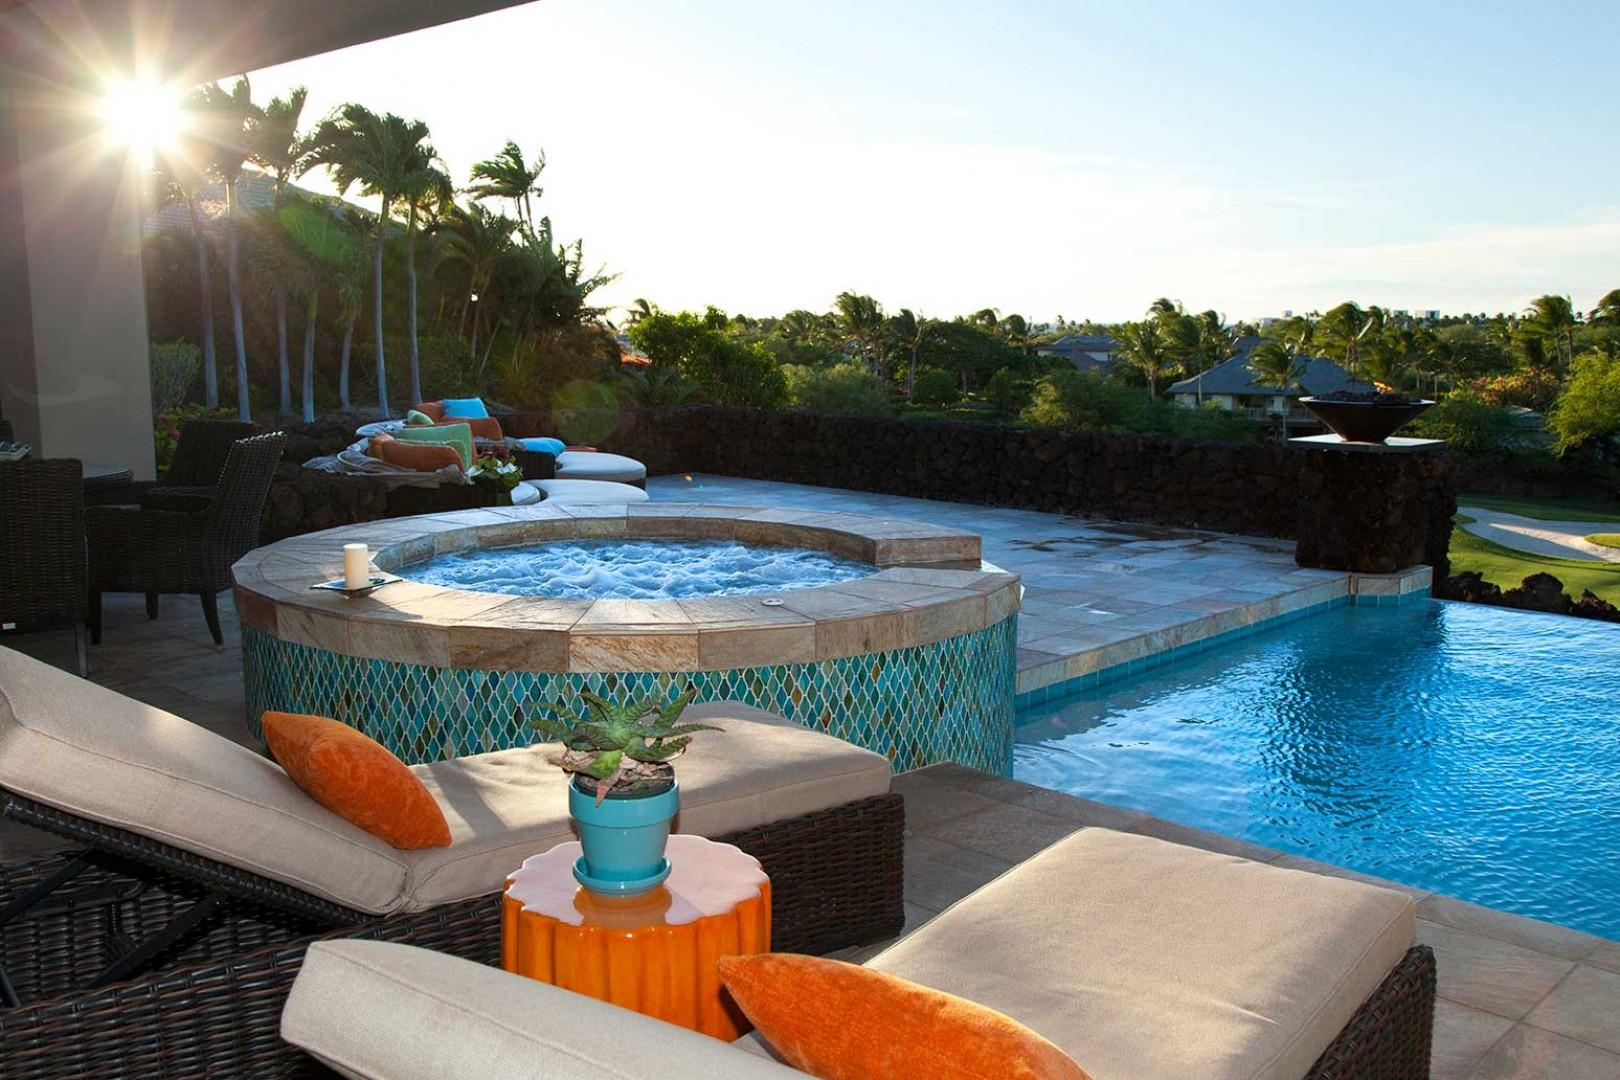 Afternoon shot of jacuzzi and pool. Relax in paradise!